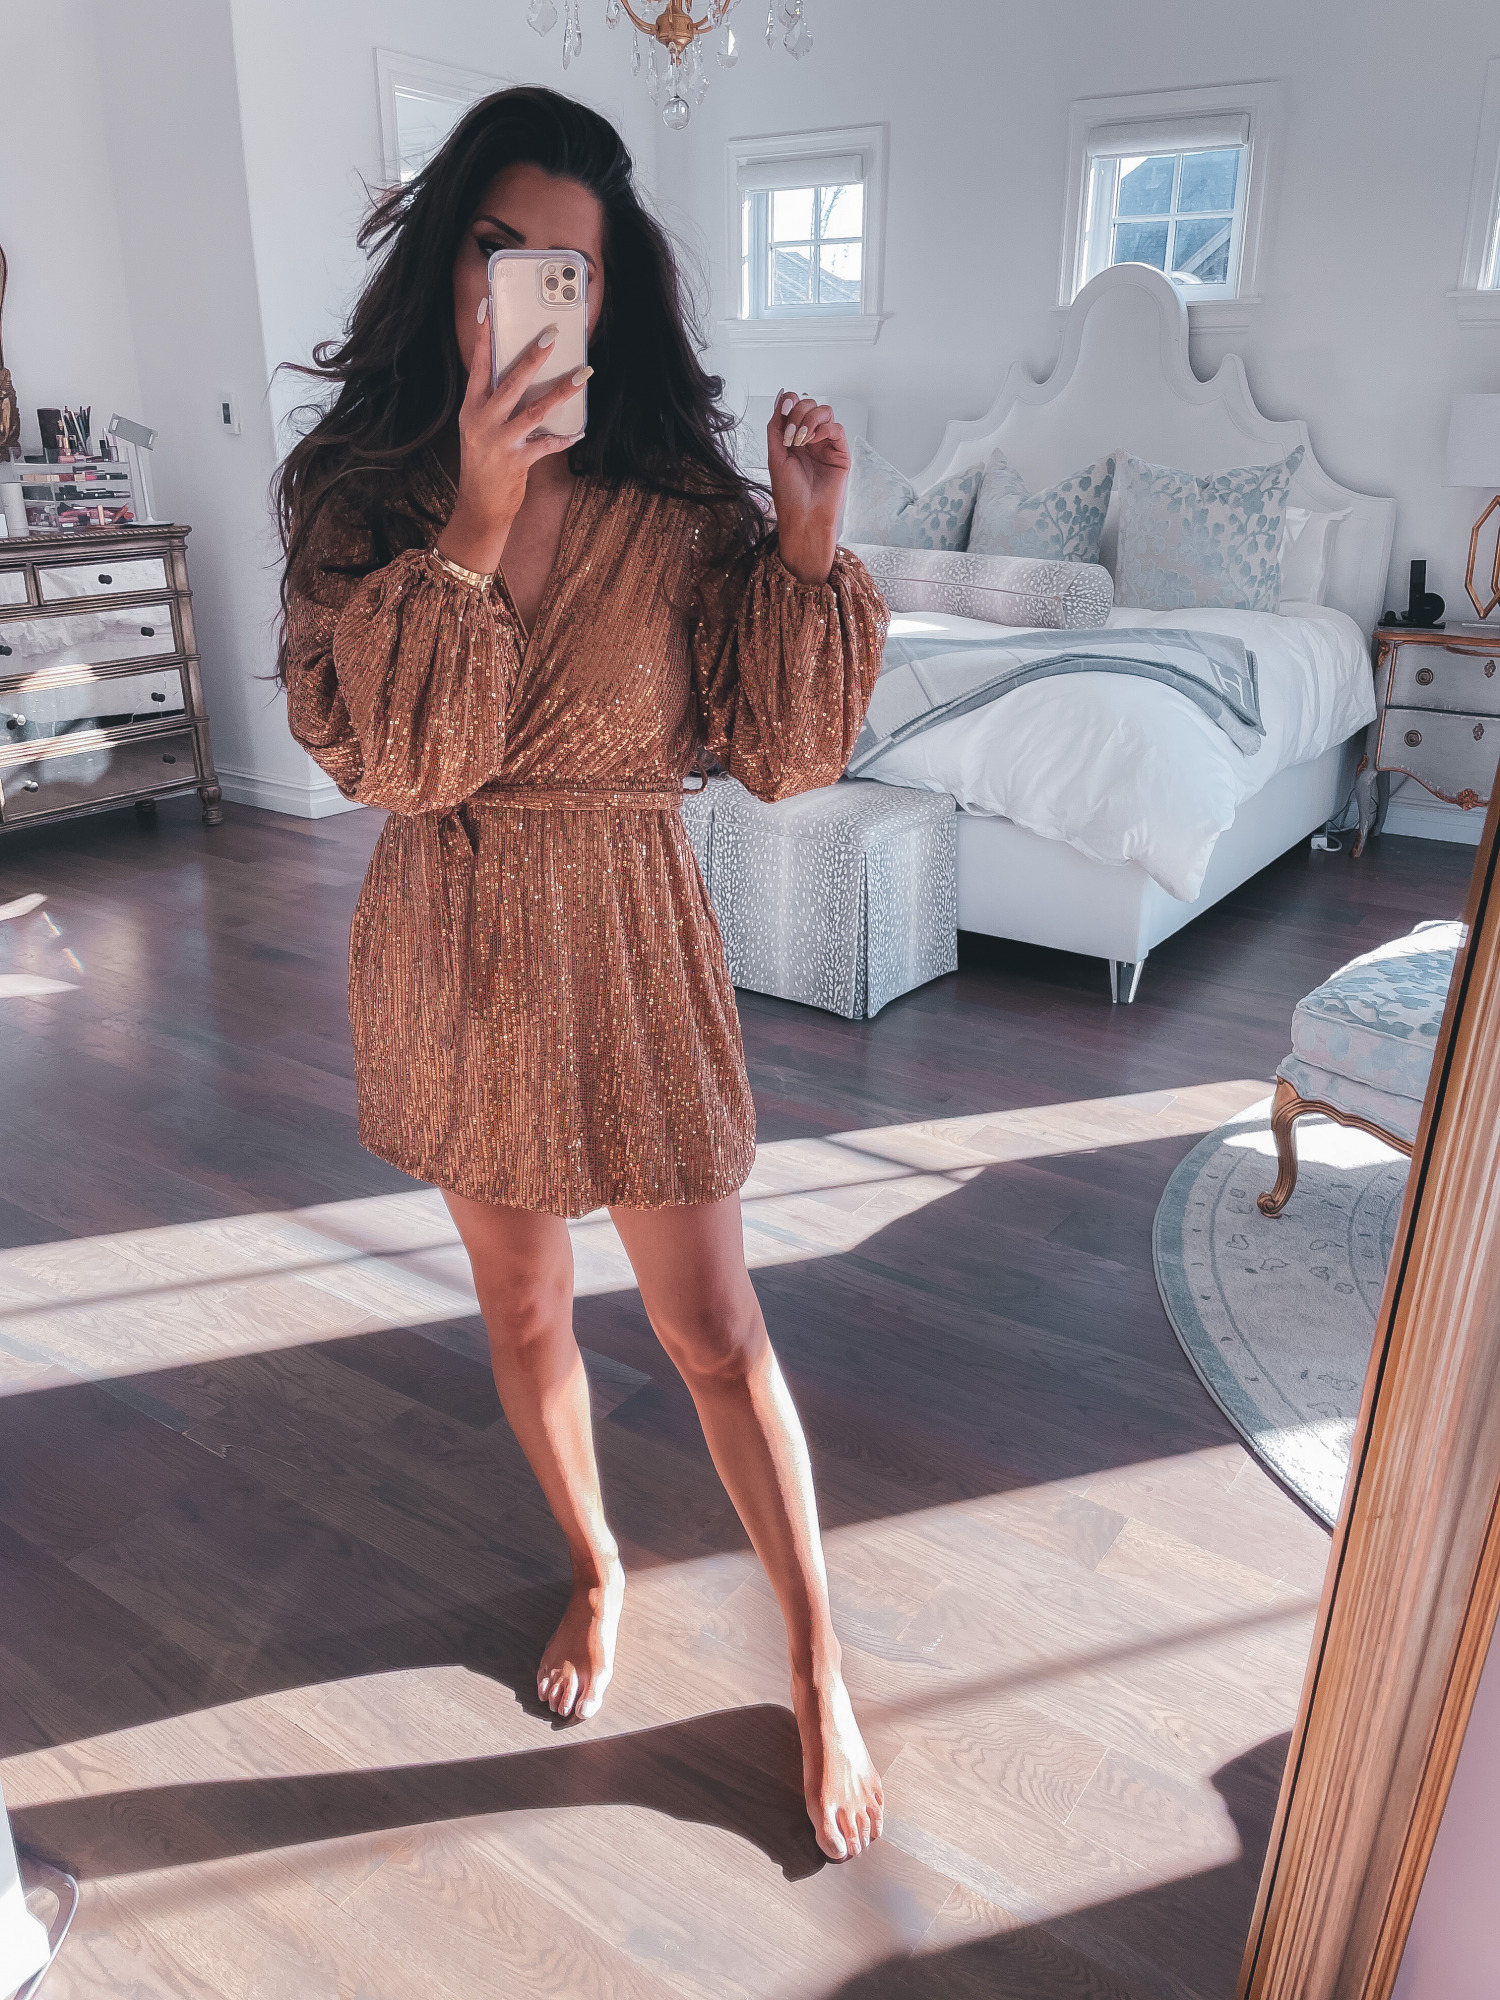 best black friday cyber monday sales 2020, top black friday sales 2020, emily gemma112 |2020 Black Friday Deals by popular US life and style blog, The Sweetest Thing: image of Emily Gemma wearing a copper color sequin dress.